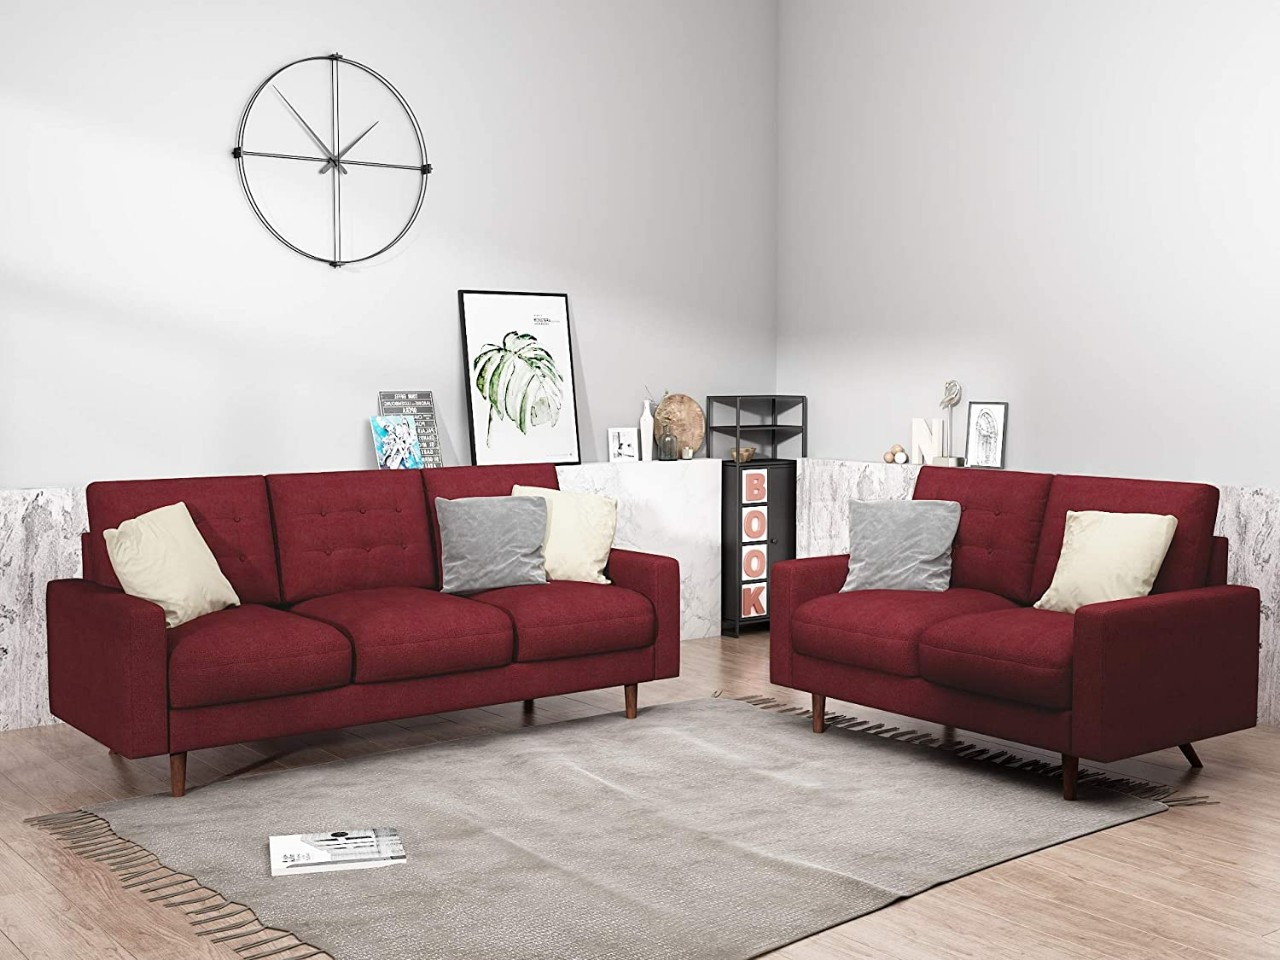 Modern Tufted Velvet Living Room Sofa Set, 2 Piece, Dark Red